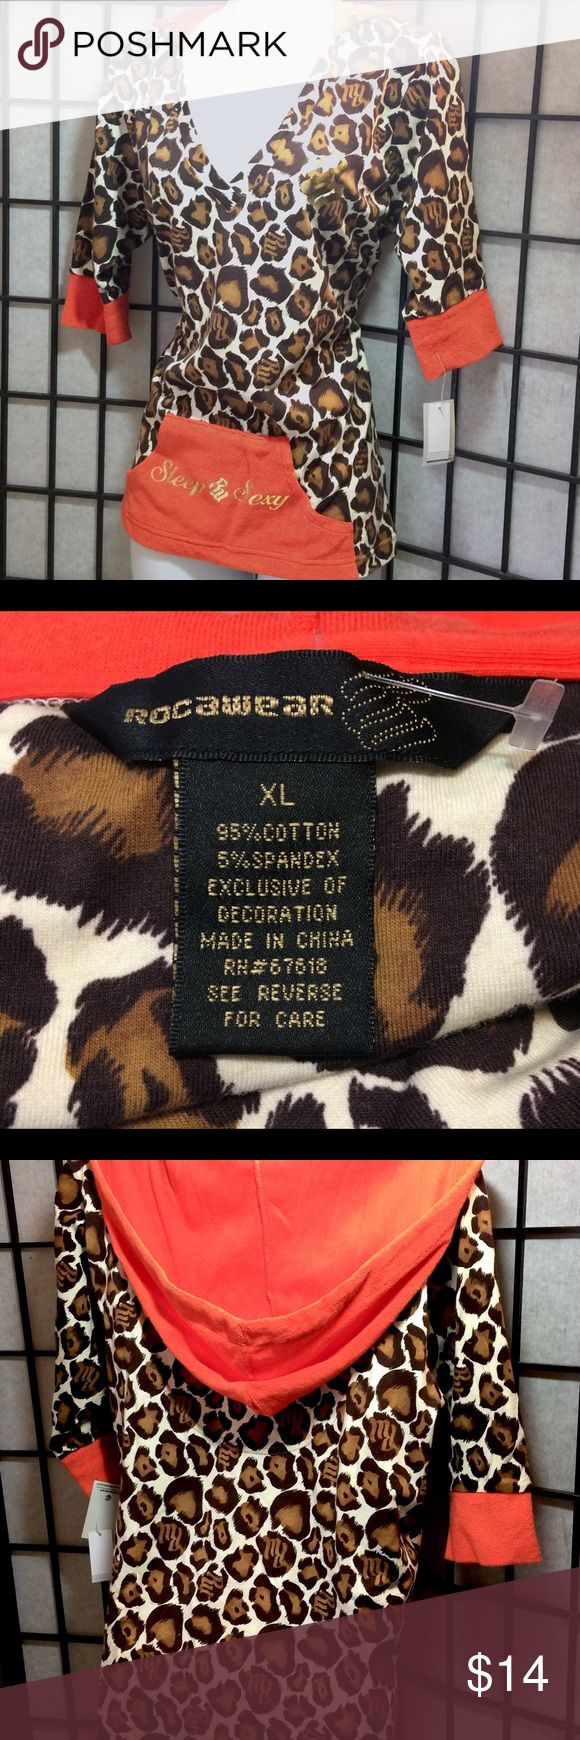 """Woman's ROCAWEAR SLEEP SEXY Hoodie Animal Print ~Brand: NEW Woman's ROCAWEAR Sleep Sexy Animal Print Hoodie Top  ~Material: 95% Cotton / 5% Spandex ~Condition: NWT  ~Size: XL ~Approx. measurements (Laid Flat): ~Armpit to Armpit:  18"""" ~Sleeve: 13"""" ~Length: 25.5""""  ~Check out my other items ~Smoke free home :BL Rocawear Tops Sweatshirts & Hoodies"""